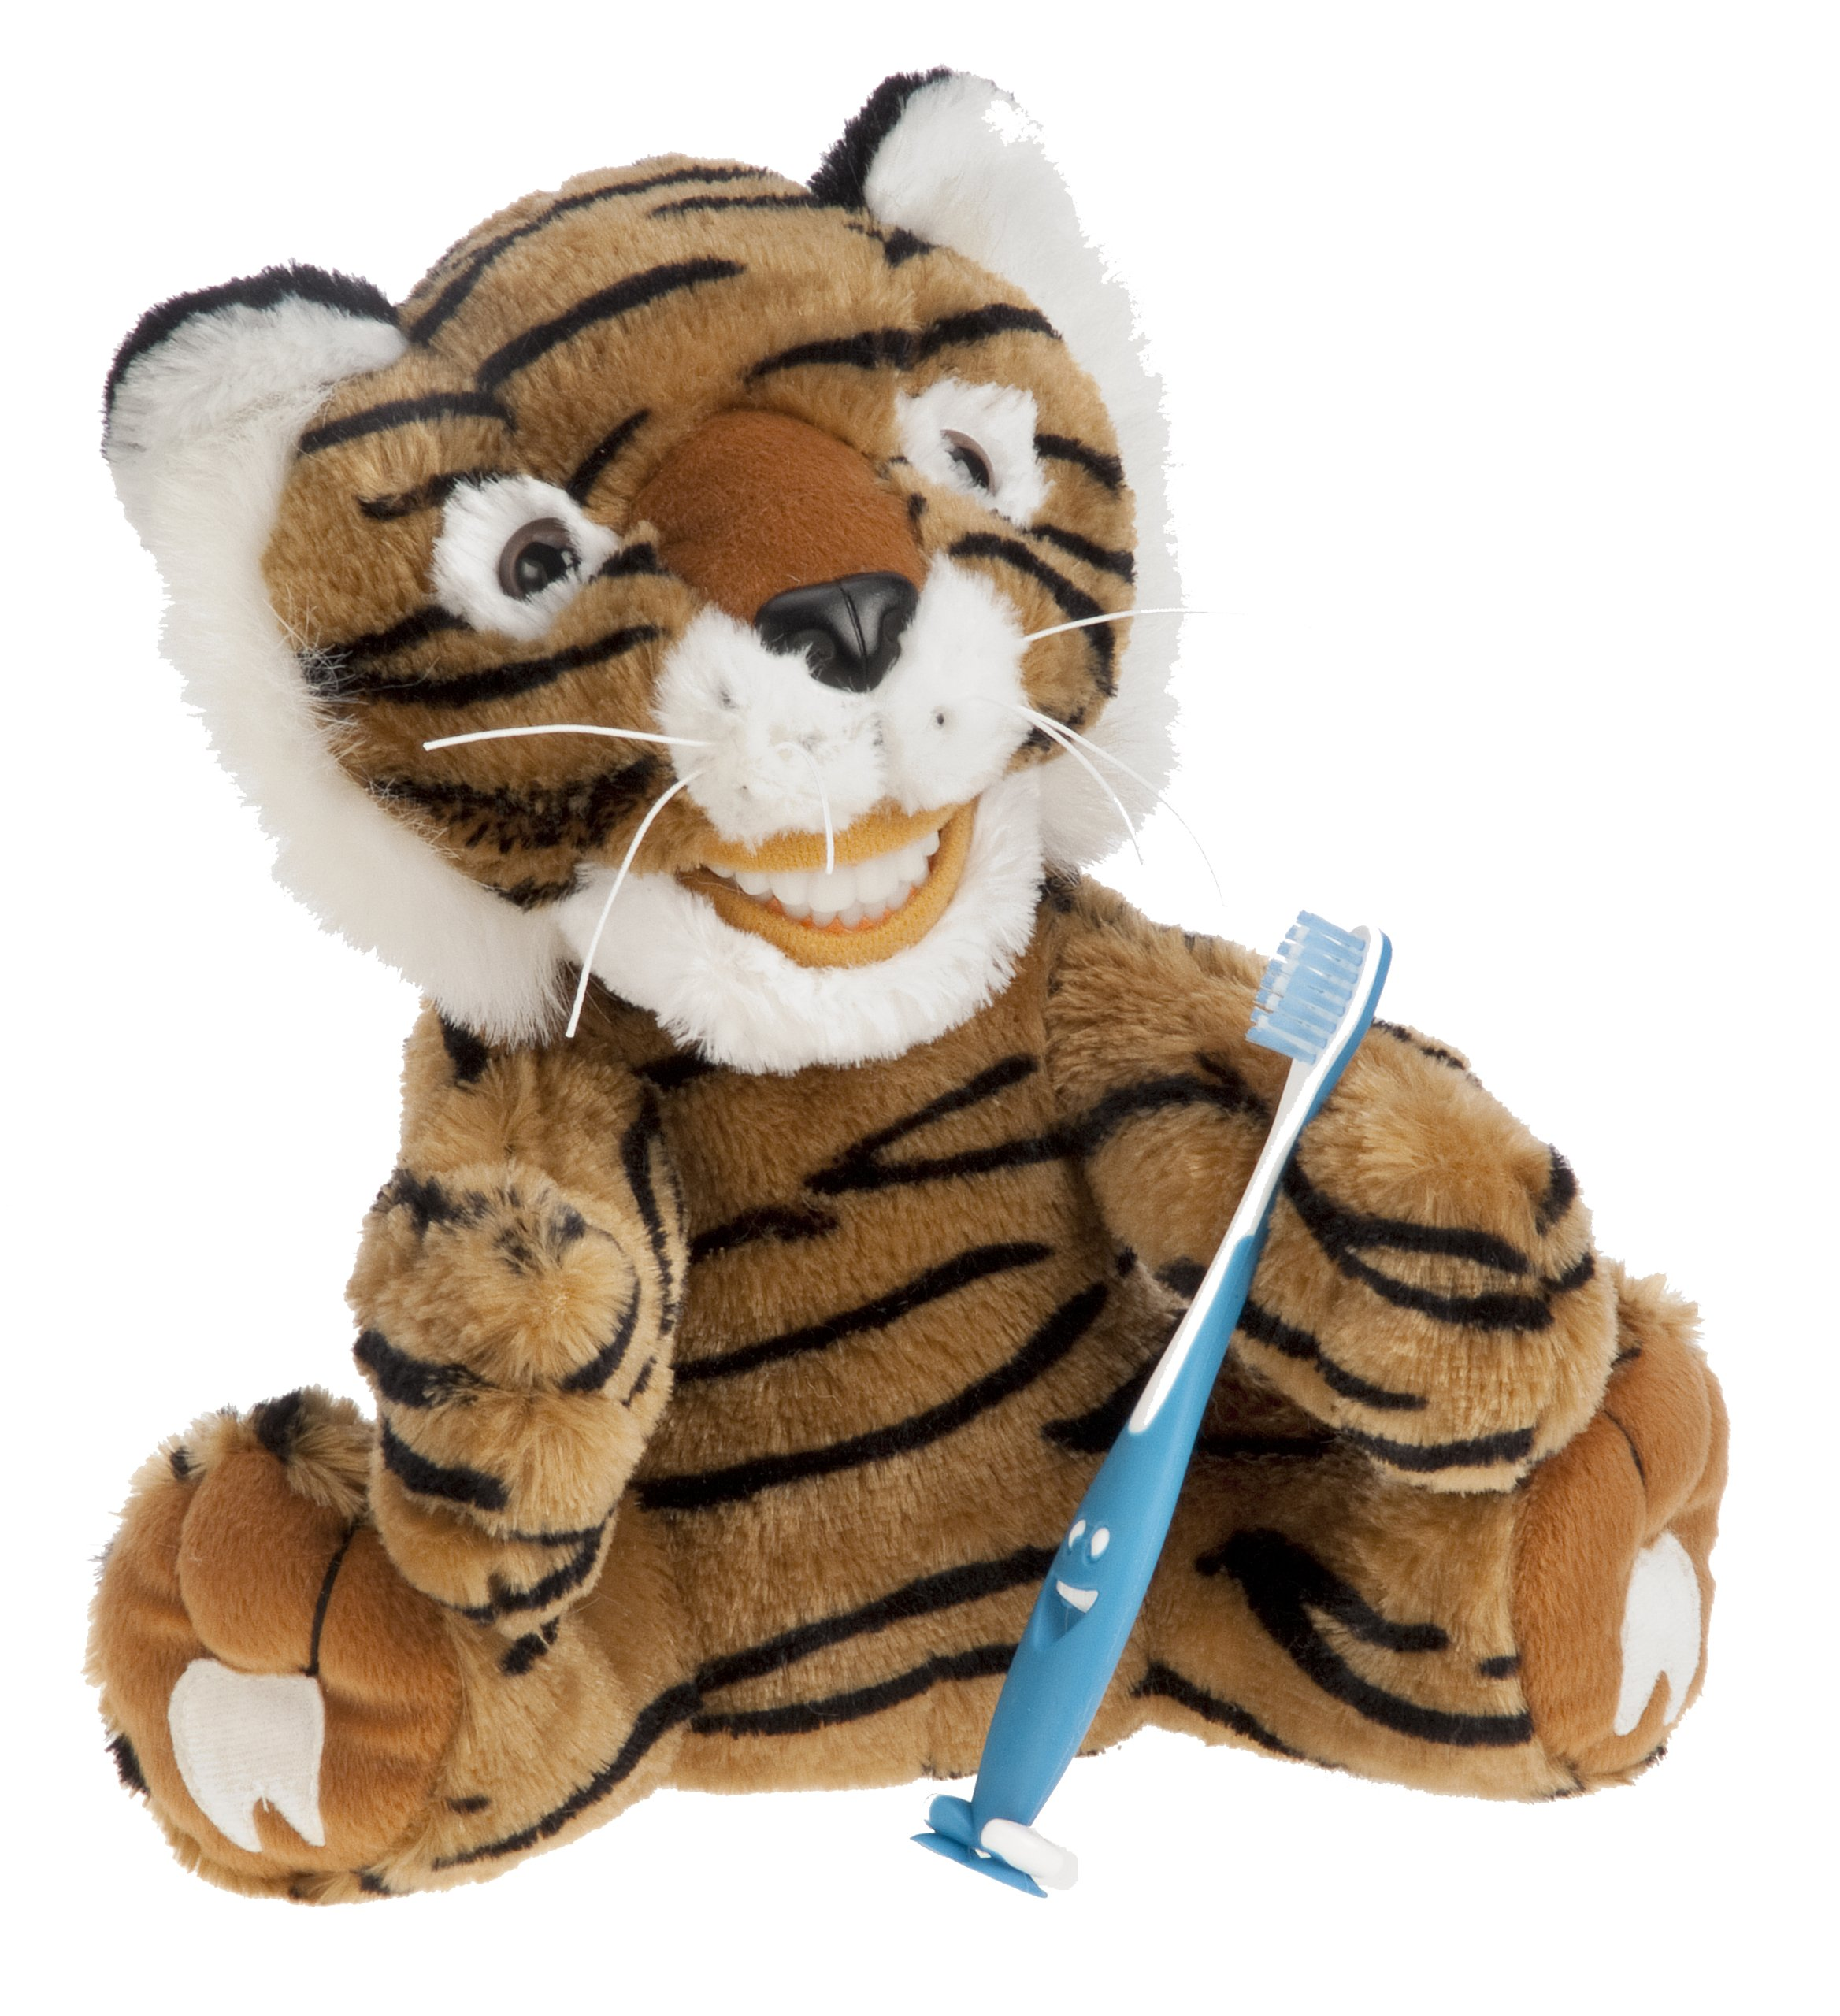 StarSmilez Kids Tooth Brushing Buddy Lil Tango Tiger - Plush Dental Education Helper - Teach Children flossing and Overall Care for Mouth and Teeth